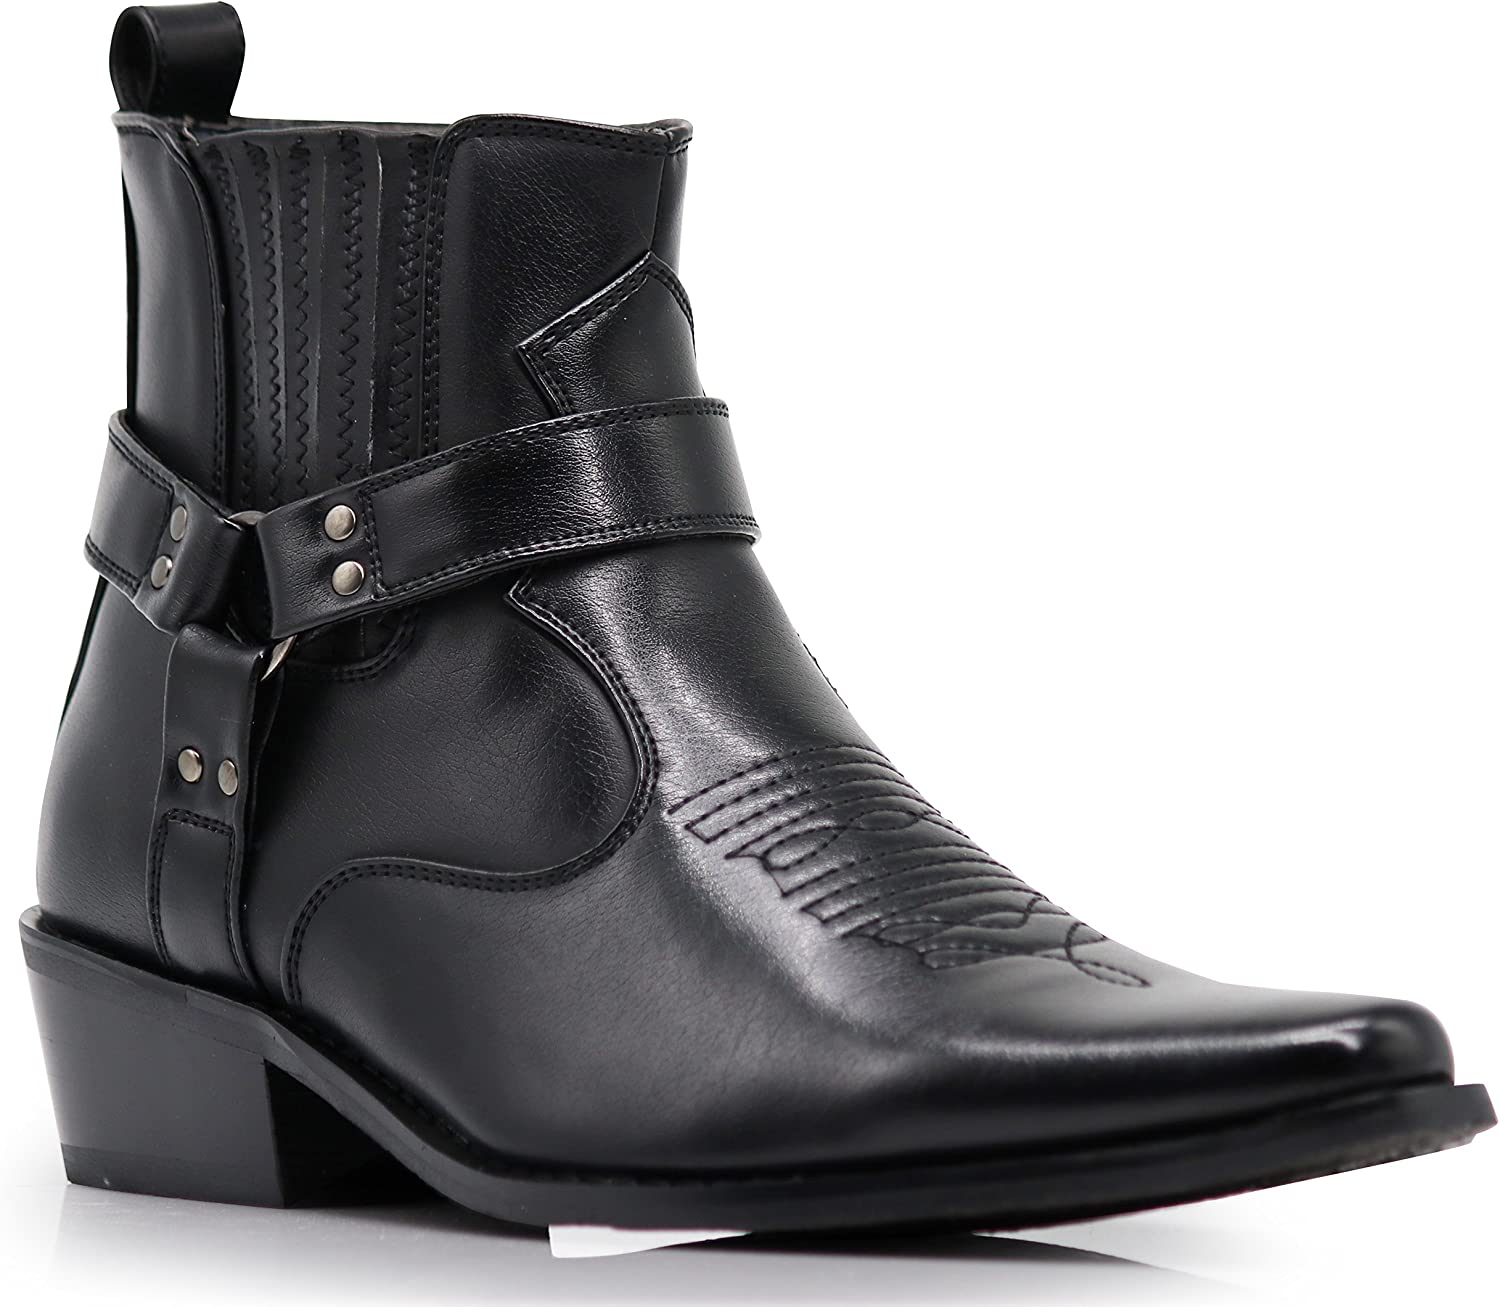 Enzo Romeo WSTN01 Men's Western Boots Side Zipper Pointy Strap Fashion Boots